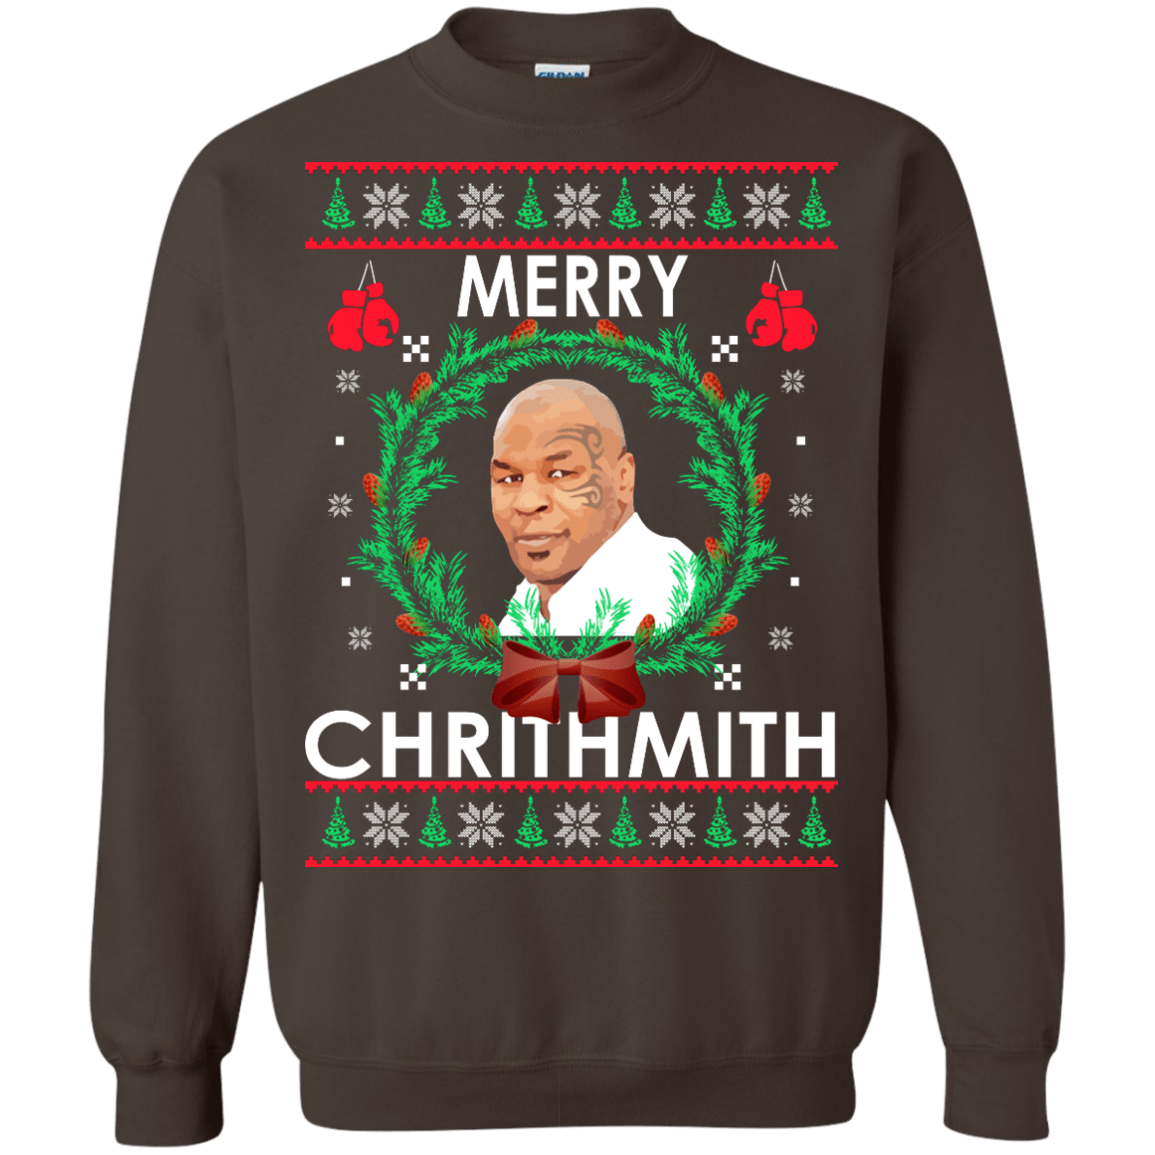 Mike Tyson Merry Chrithmith Christmas Sweater Shirt Hoodie